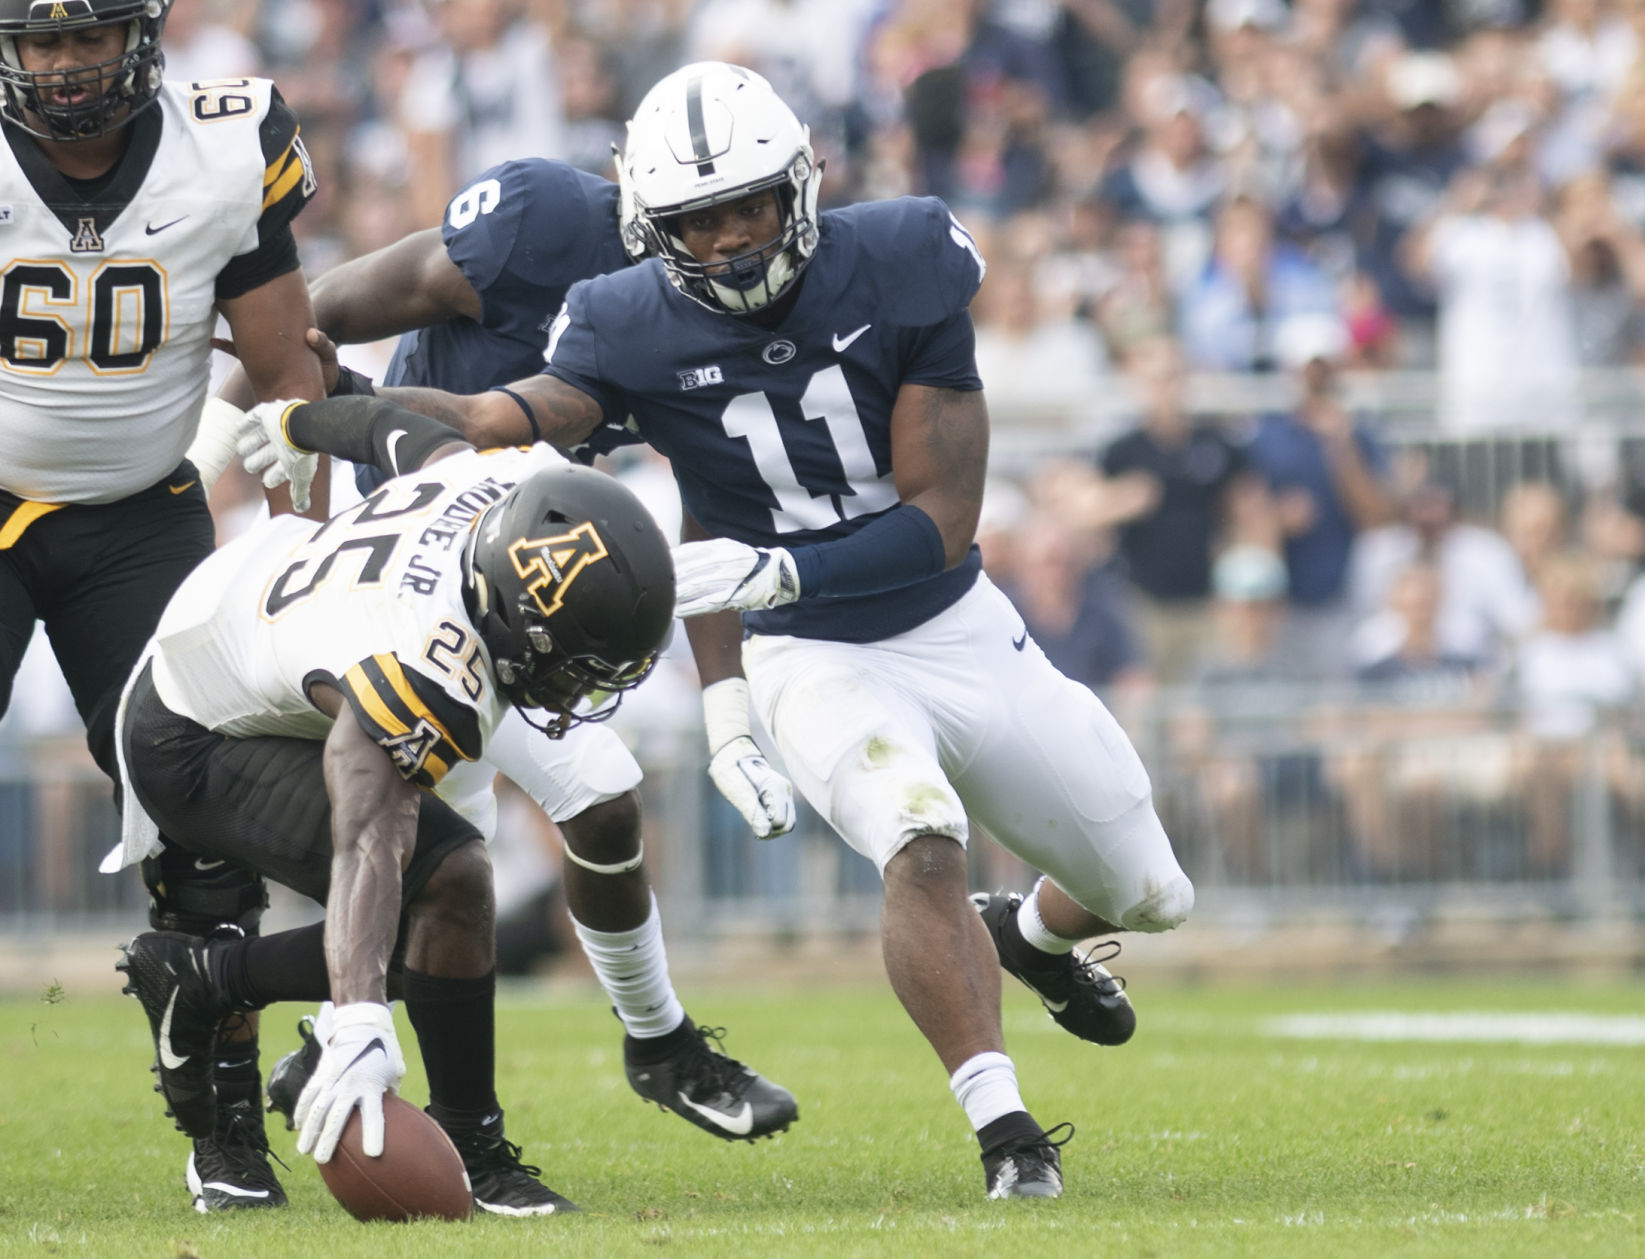 Penn State Football Penn State Football News Daily Collegian Collegian Psu Edu